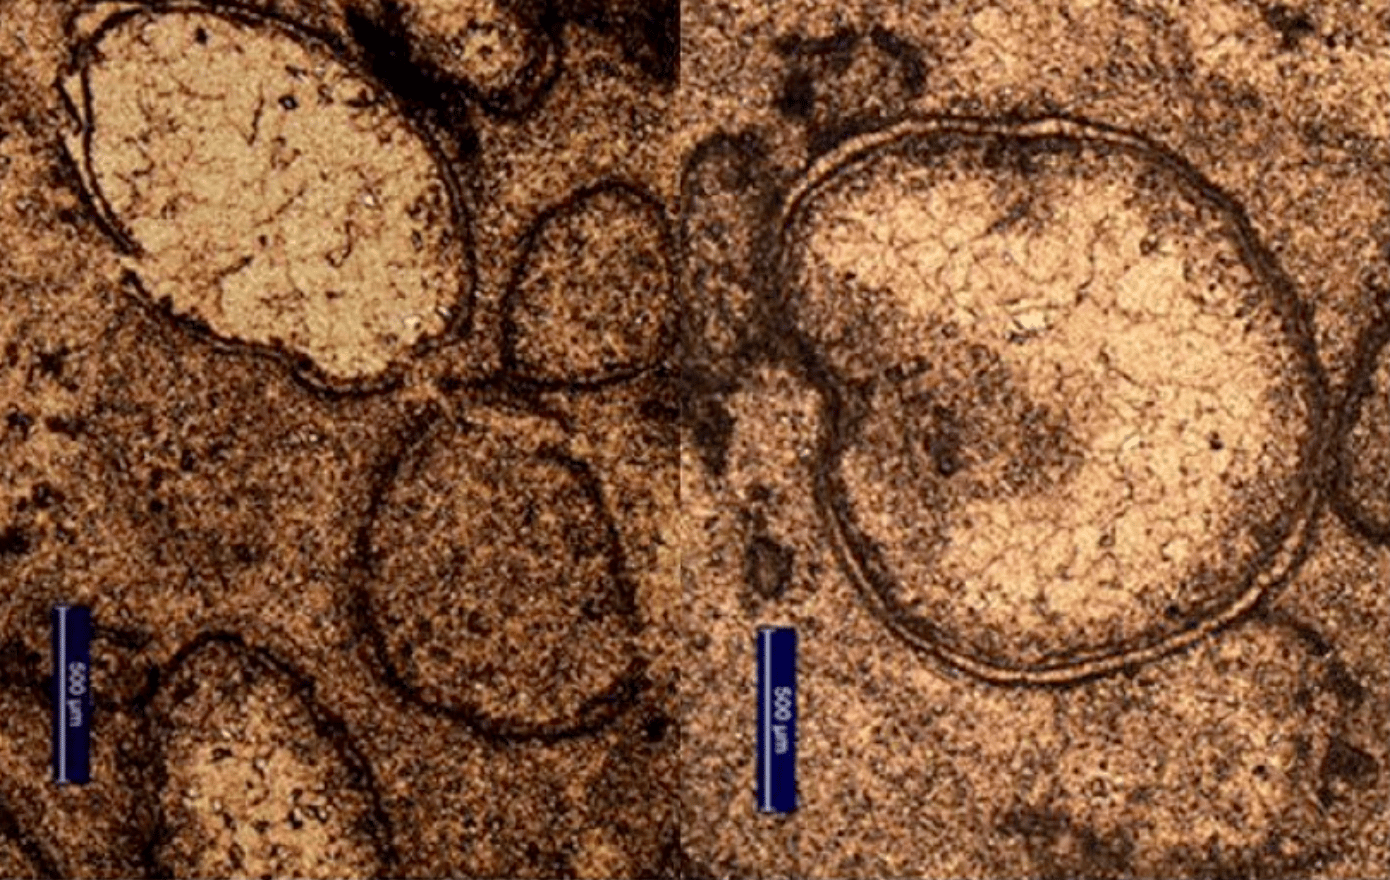 A close-up of the spherules that led the researchers to suspect an asteroid impact on Earth about 3.5 billion years ago